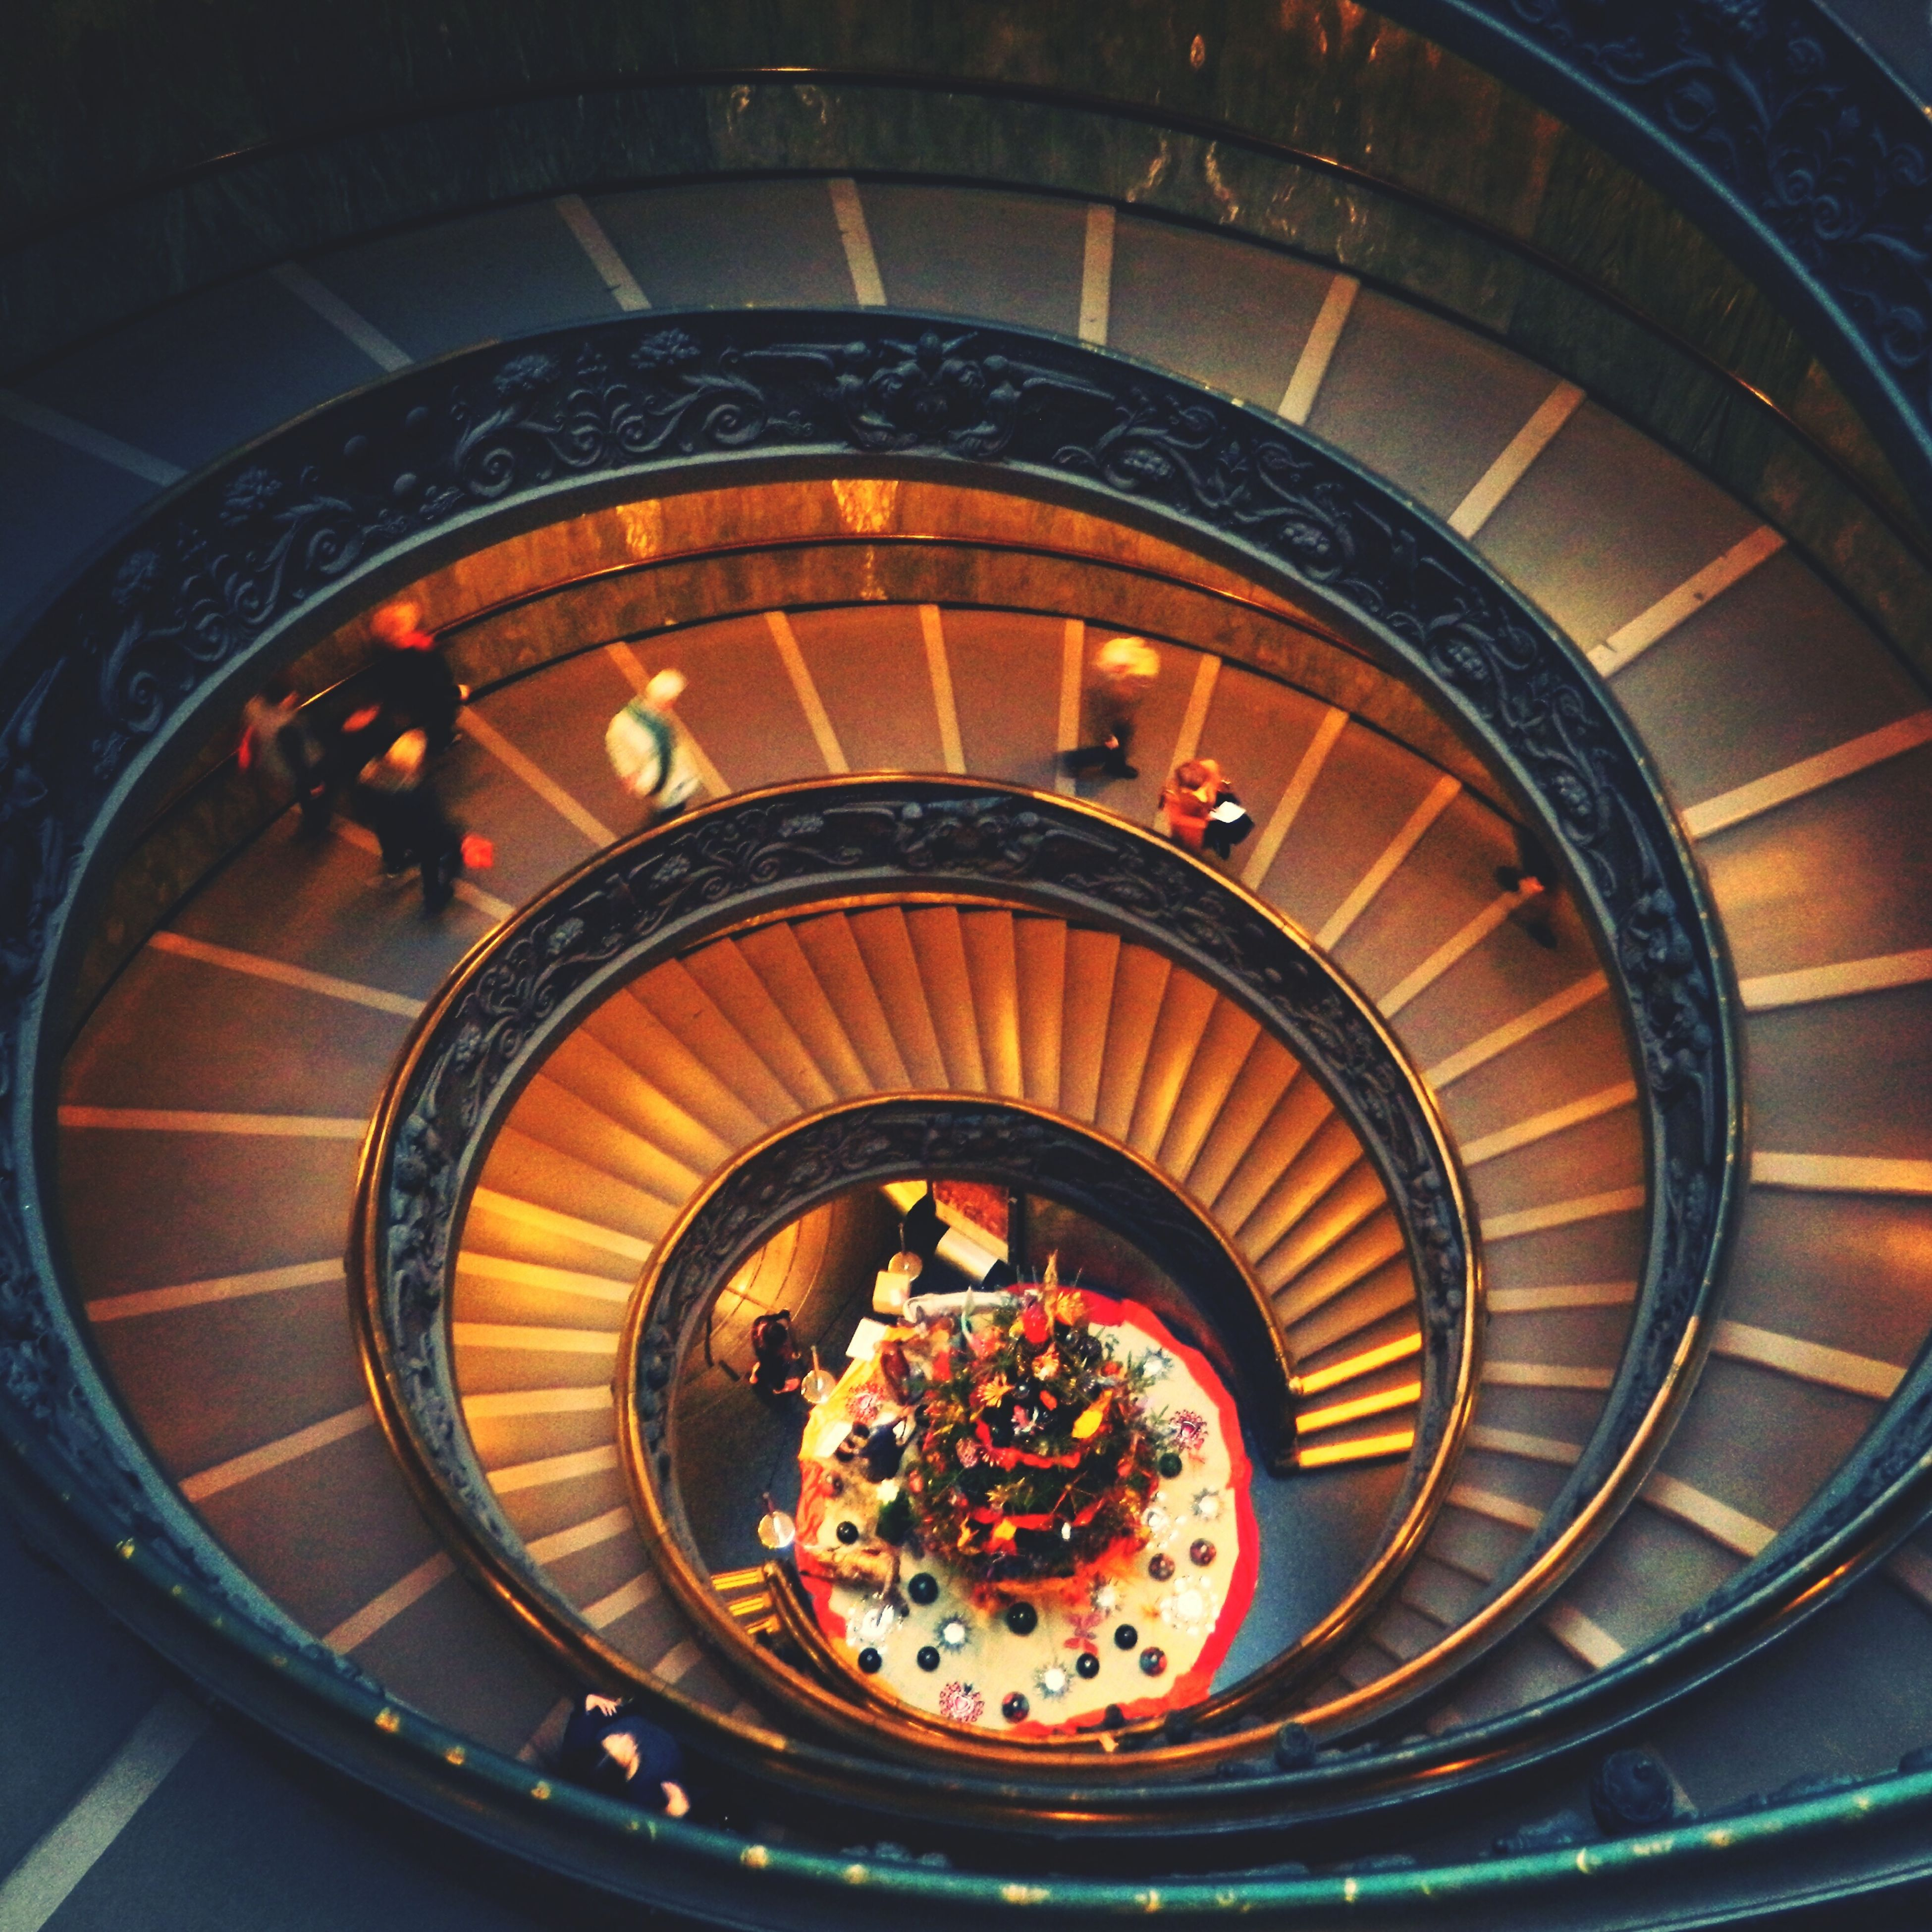 indoors, high angle view, steps, steps and staircases, staircase, railing, spiral, architecture, directly above, built structure, spiral staircase, pattern, no people, elevated view, flower, freshness, circle, day, design, close-up